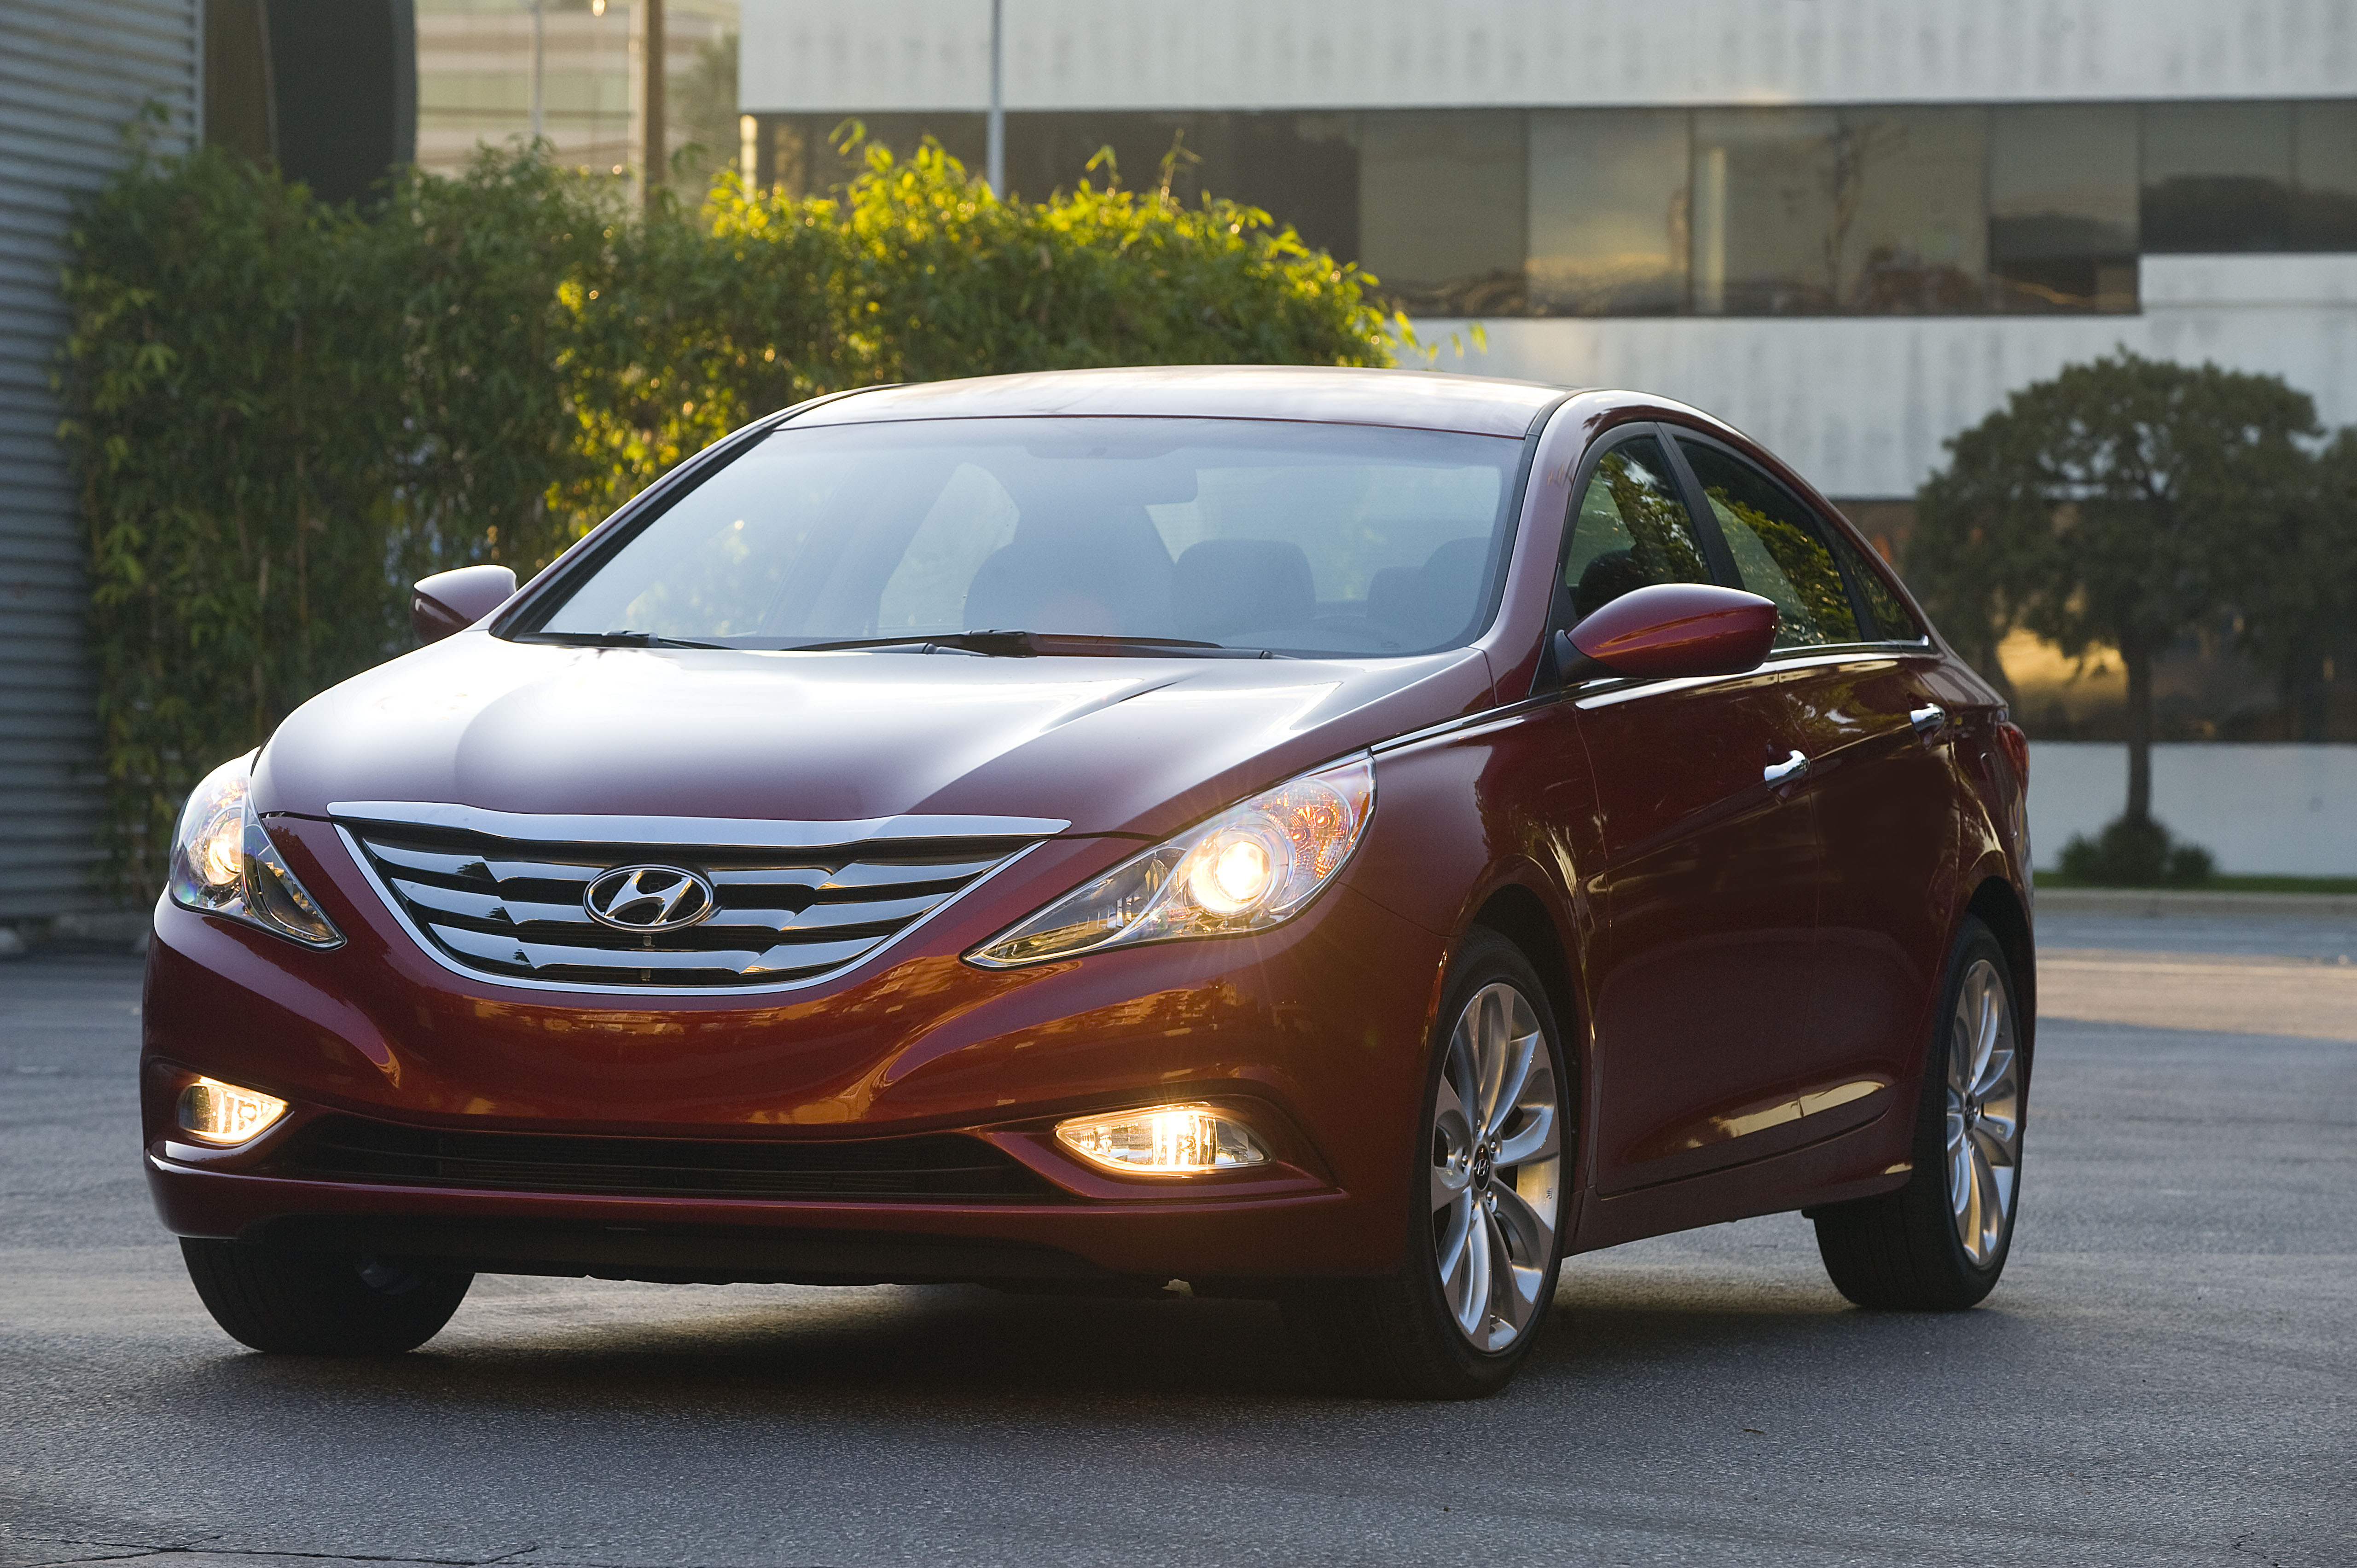 FILE - This undated file product image provided by Hyundai shows the 2013 Hyundai Sonata. Hyundai is recalling its popular Sonata midsize sedan to fix problems with the gear shift levers, the Korean automaker said Wednesday, July 30, 2014. The recall covers 883,000 cars from the 2011 through 2014 model years. (AP Photo/Hyundai, File)